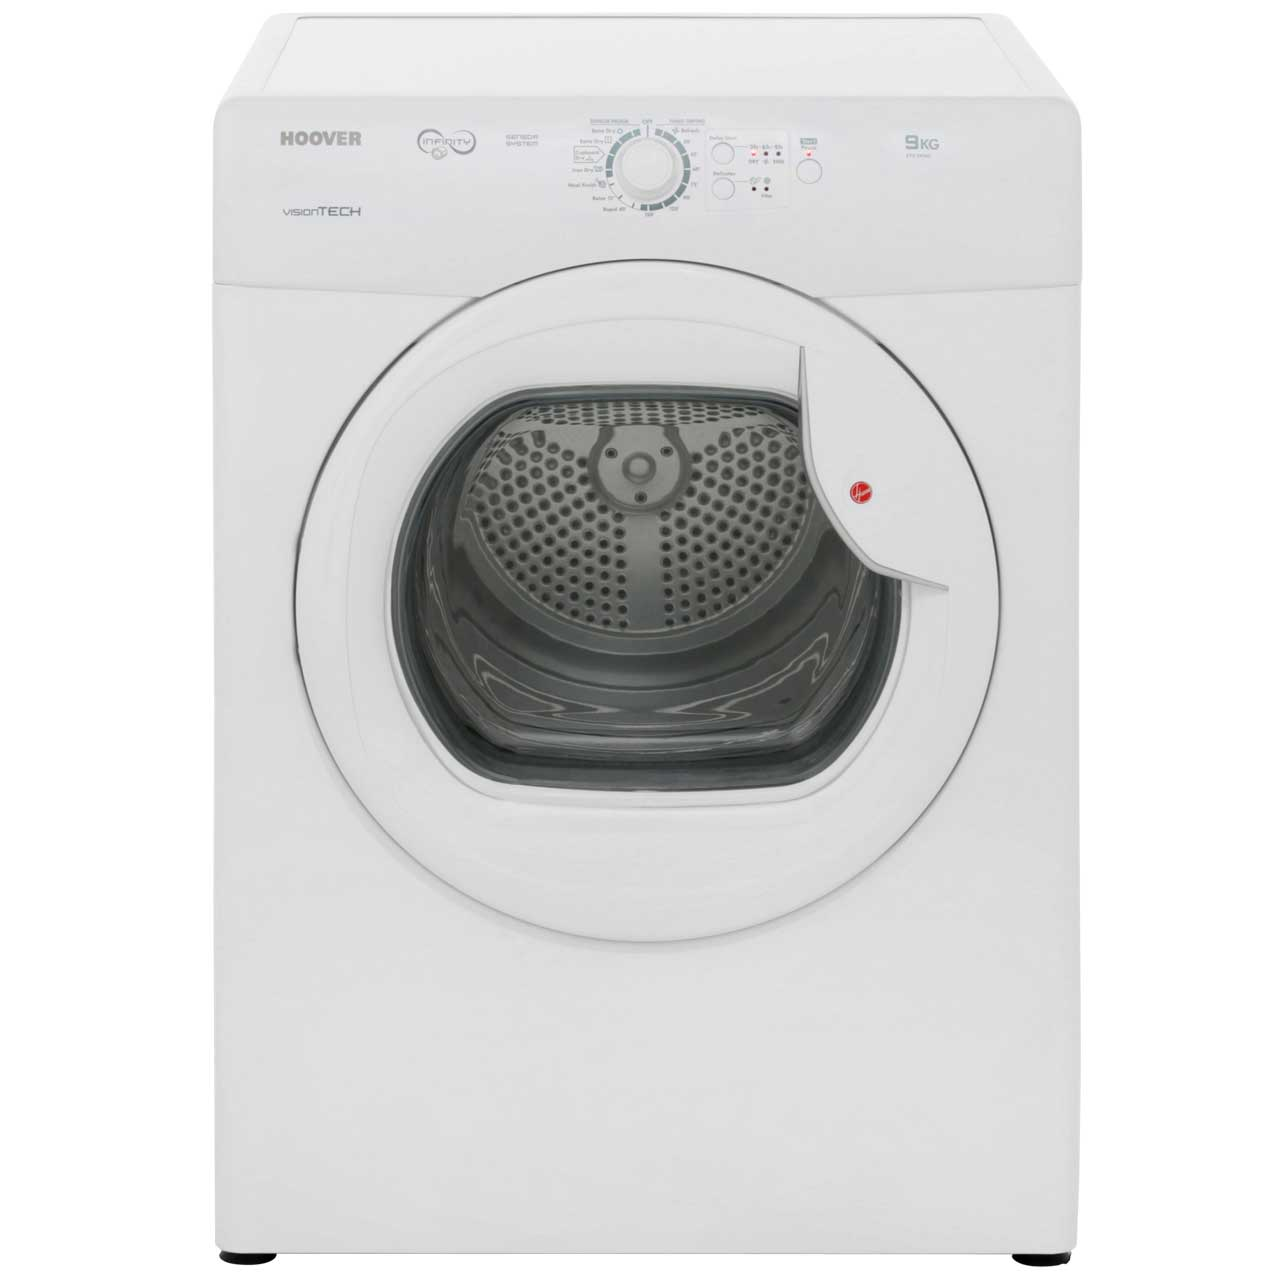 Hoover Tumble Dryer Shop For Cheap Tumble Dryers And